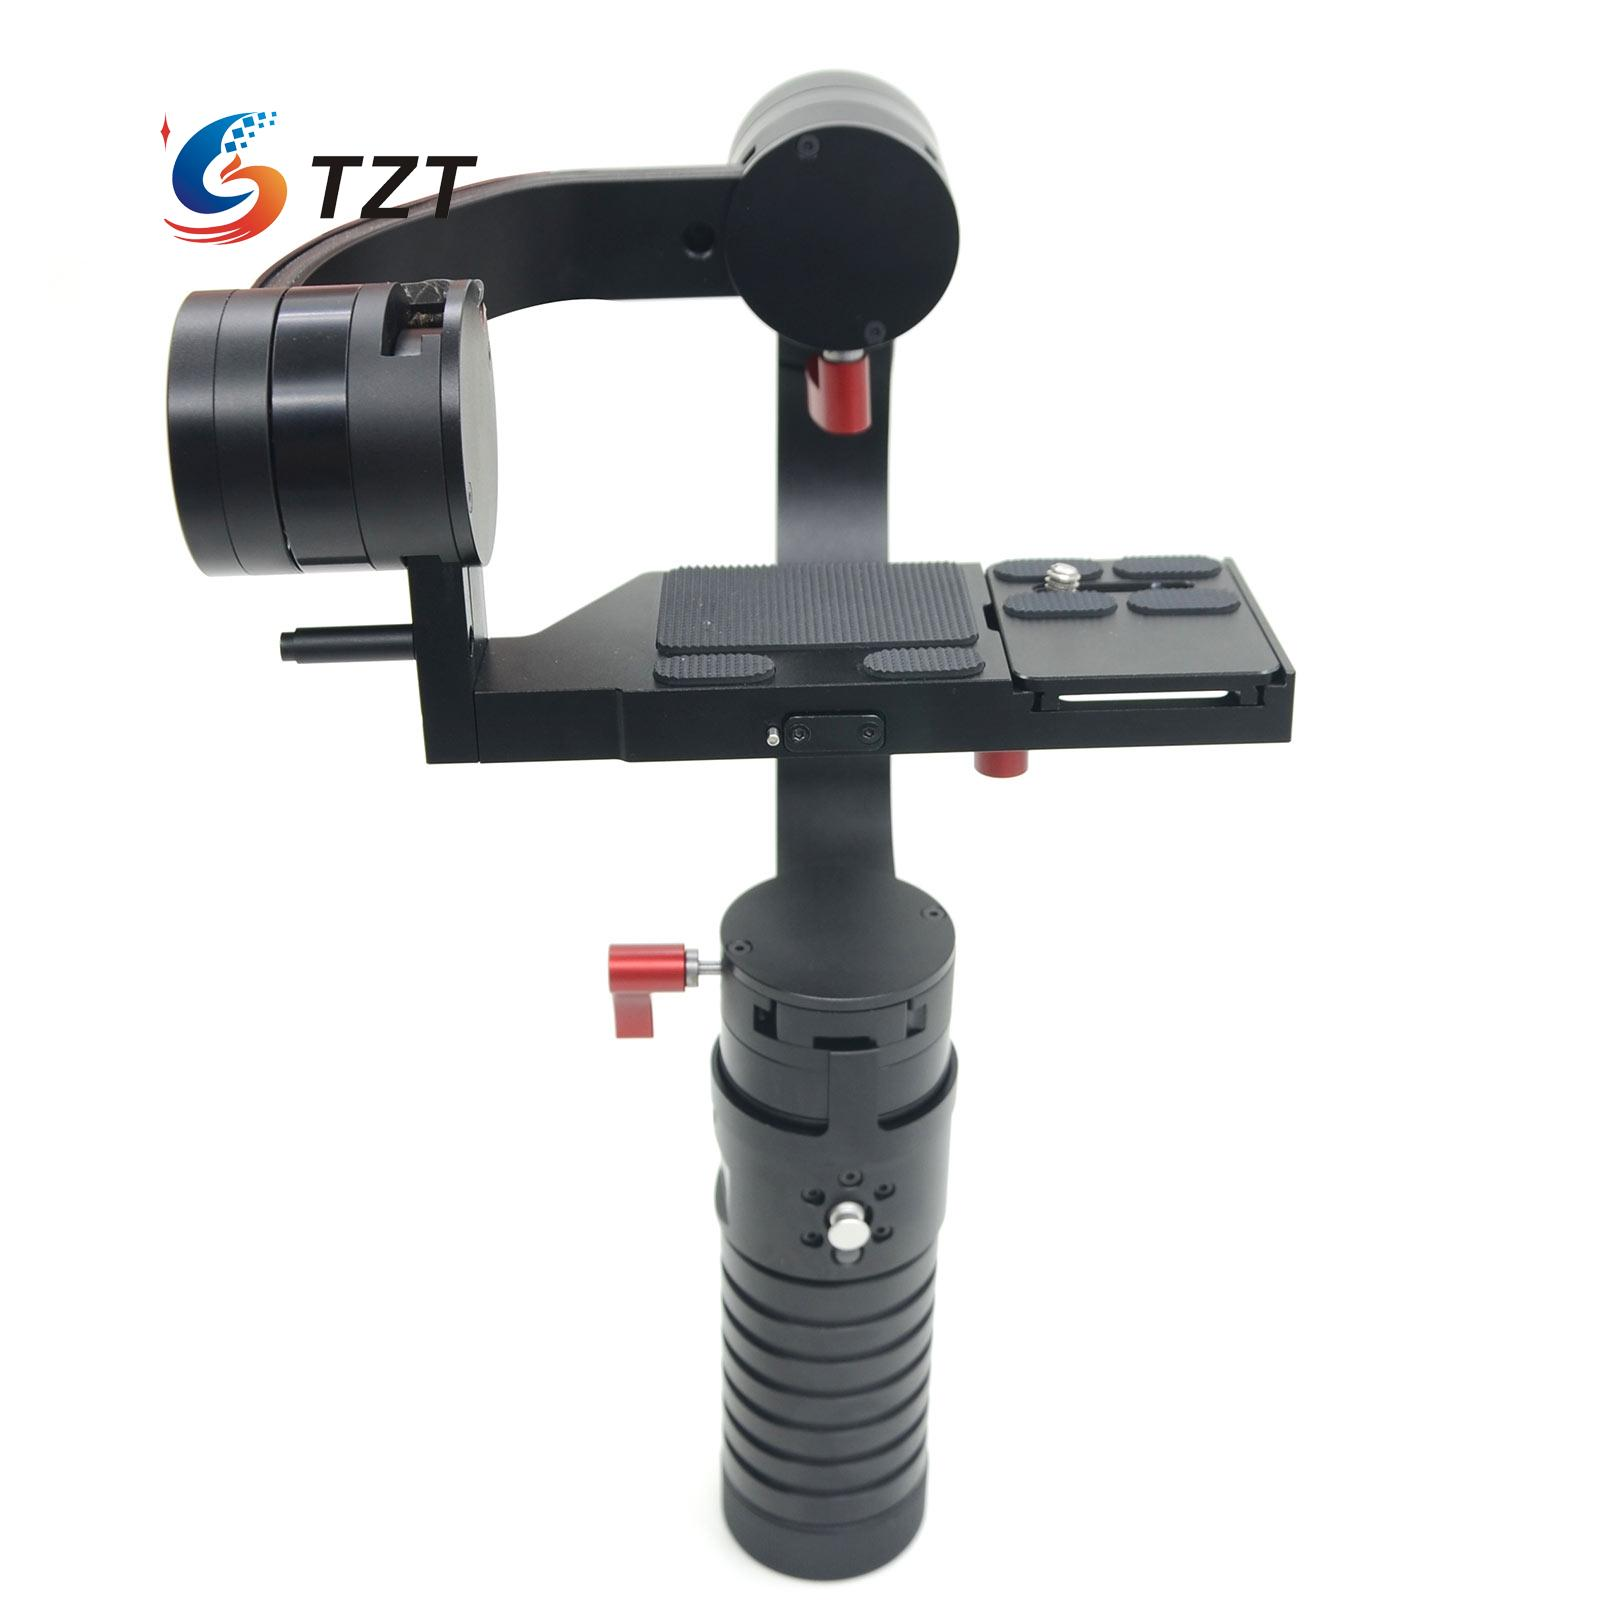 Handheld 3 Axis Gimbal Stabilizer 32Bit Gyro Steadicam PTZ PK DS1 for DSLR 5D3 5D2 6D Camera цена